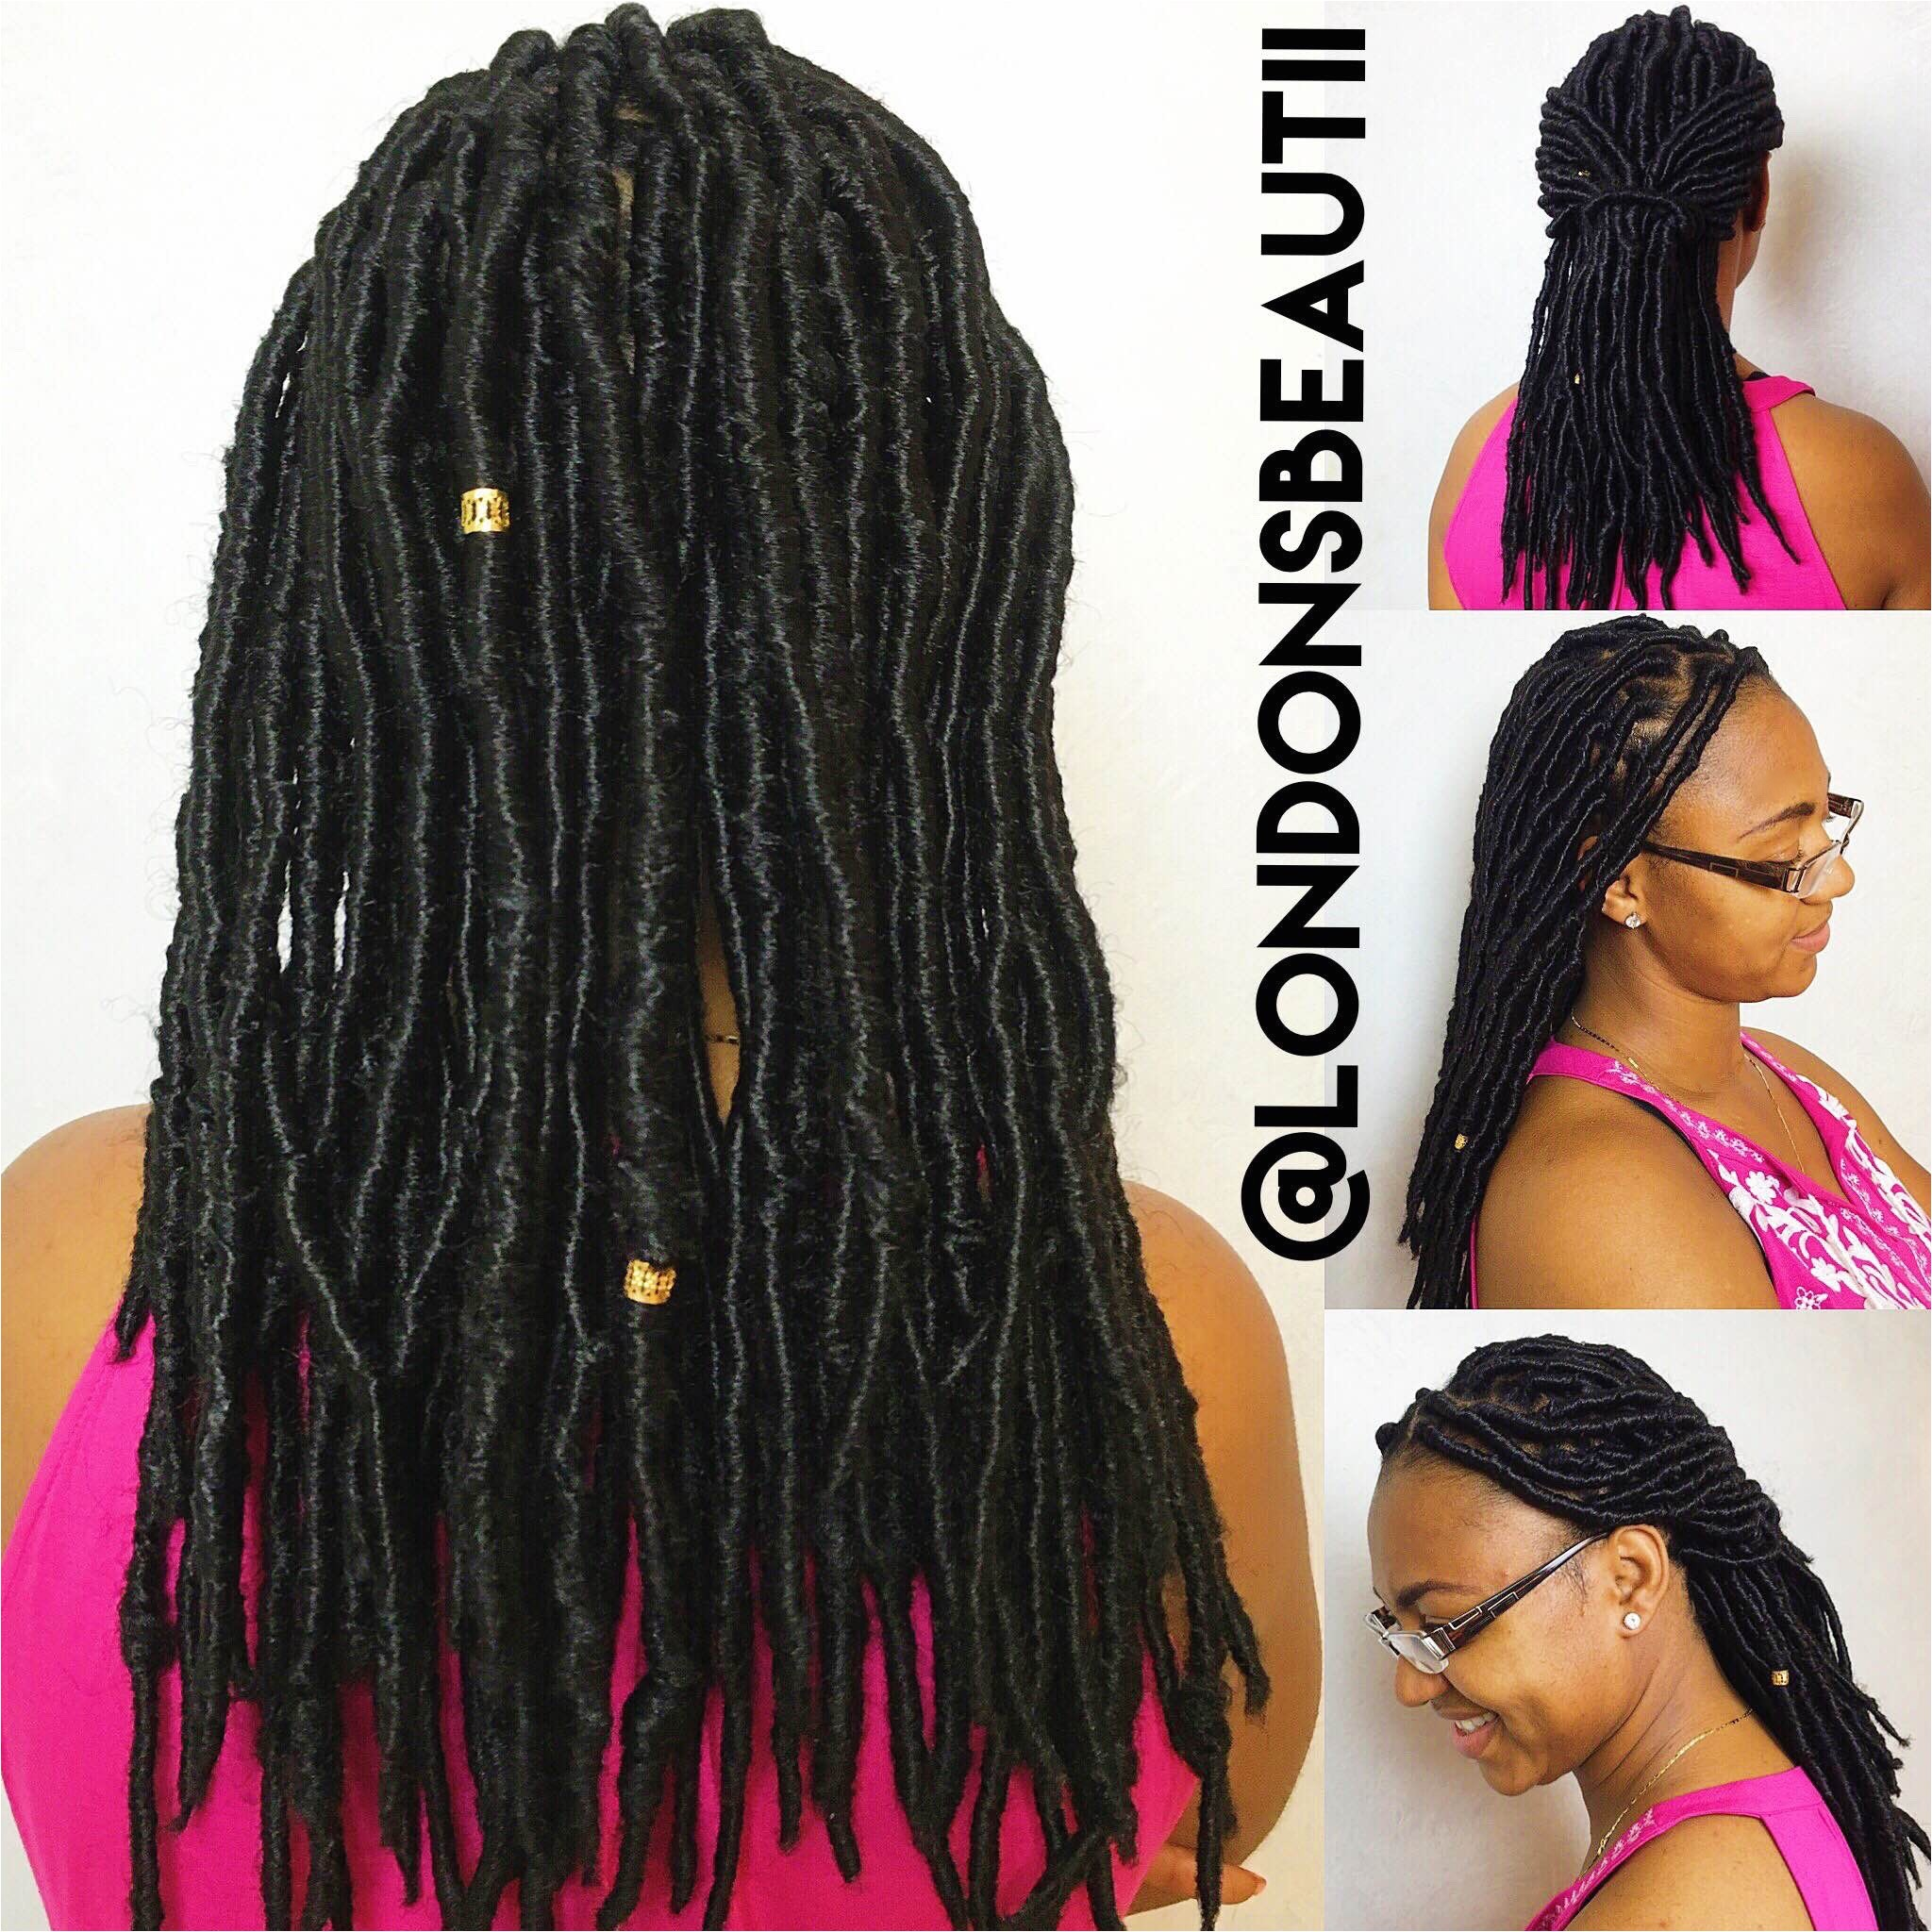 Two Strand Twist Hairstyles Luxury Loc Hairstyles Awesome Dreadlocks Hairstyles 0d